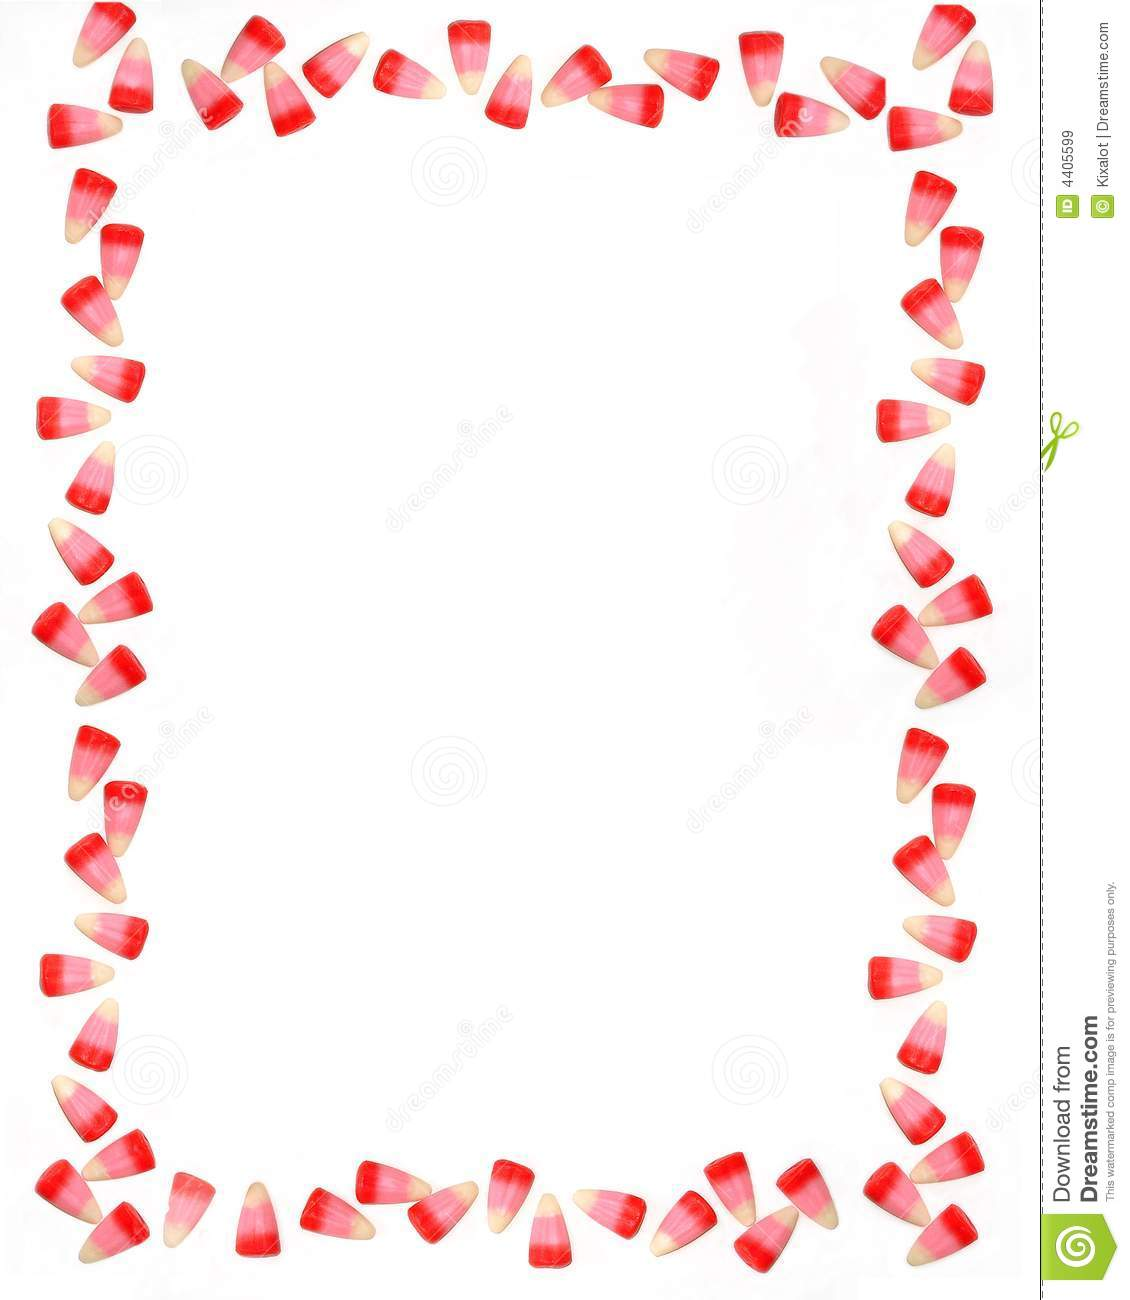 Candy Corn Border Perfect For Valentine S Day  Sweet Candy Frame